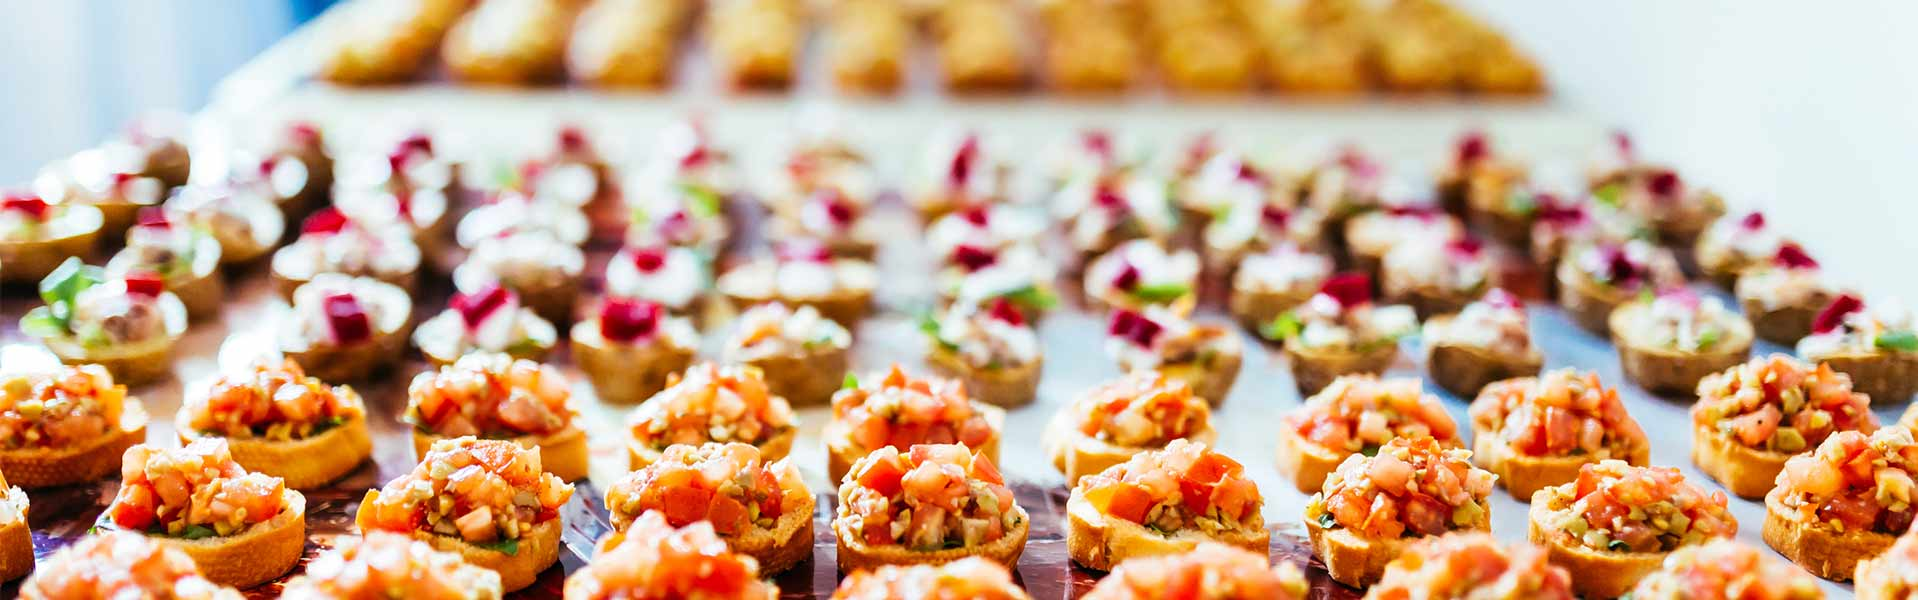 https://thefrenchgourmet.com/wp-content/uploads/2018/02/hors-doevres-corporate-catering.jpg